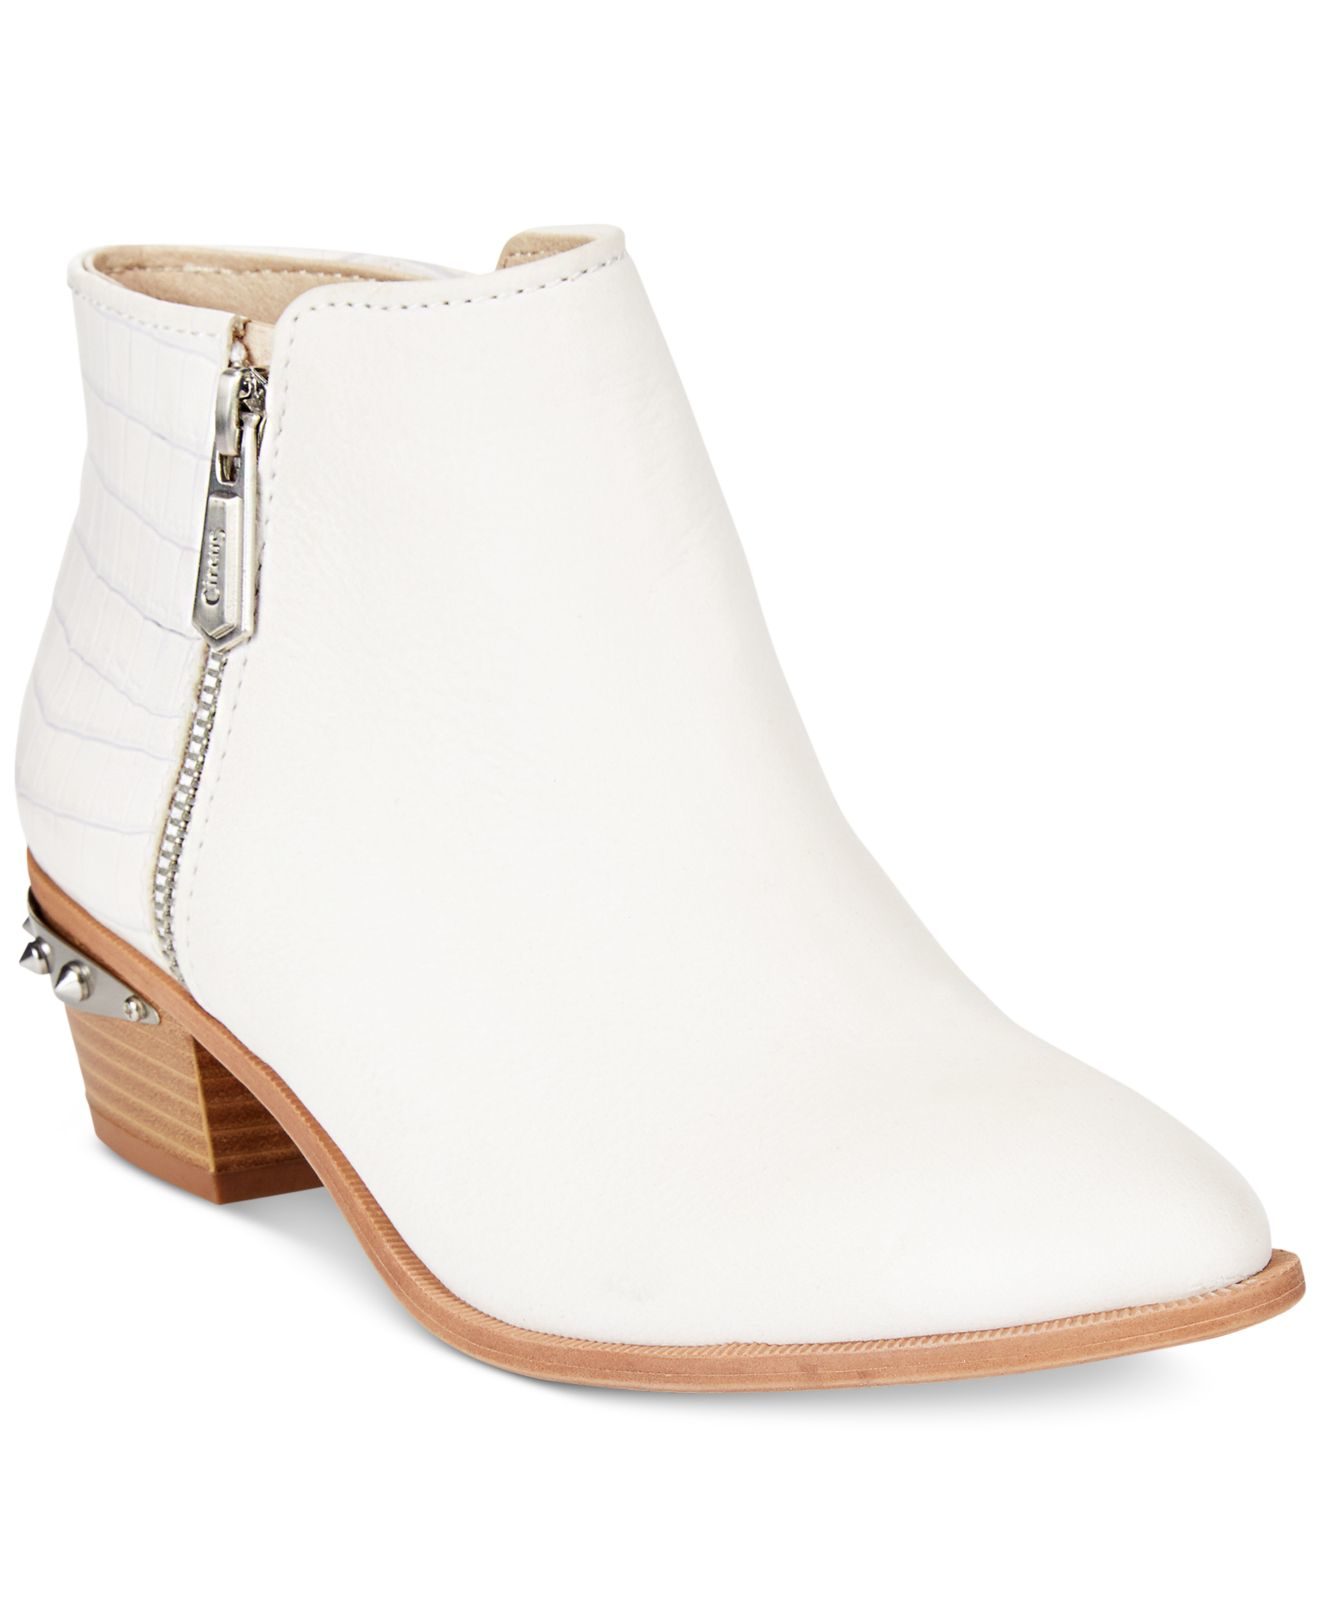 7cb00fa2adc95 Lyst - Circus by Sam Edelman Holt Booties in White